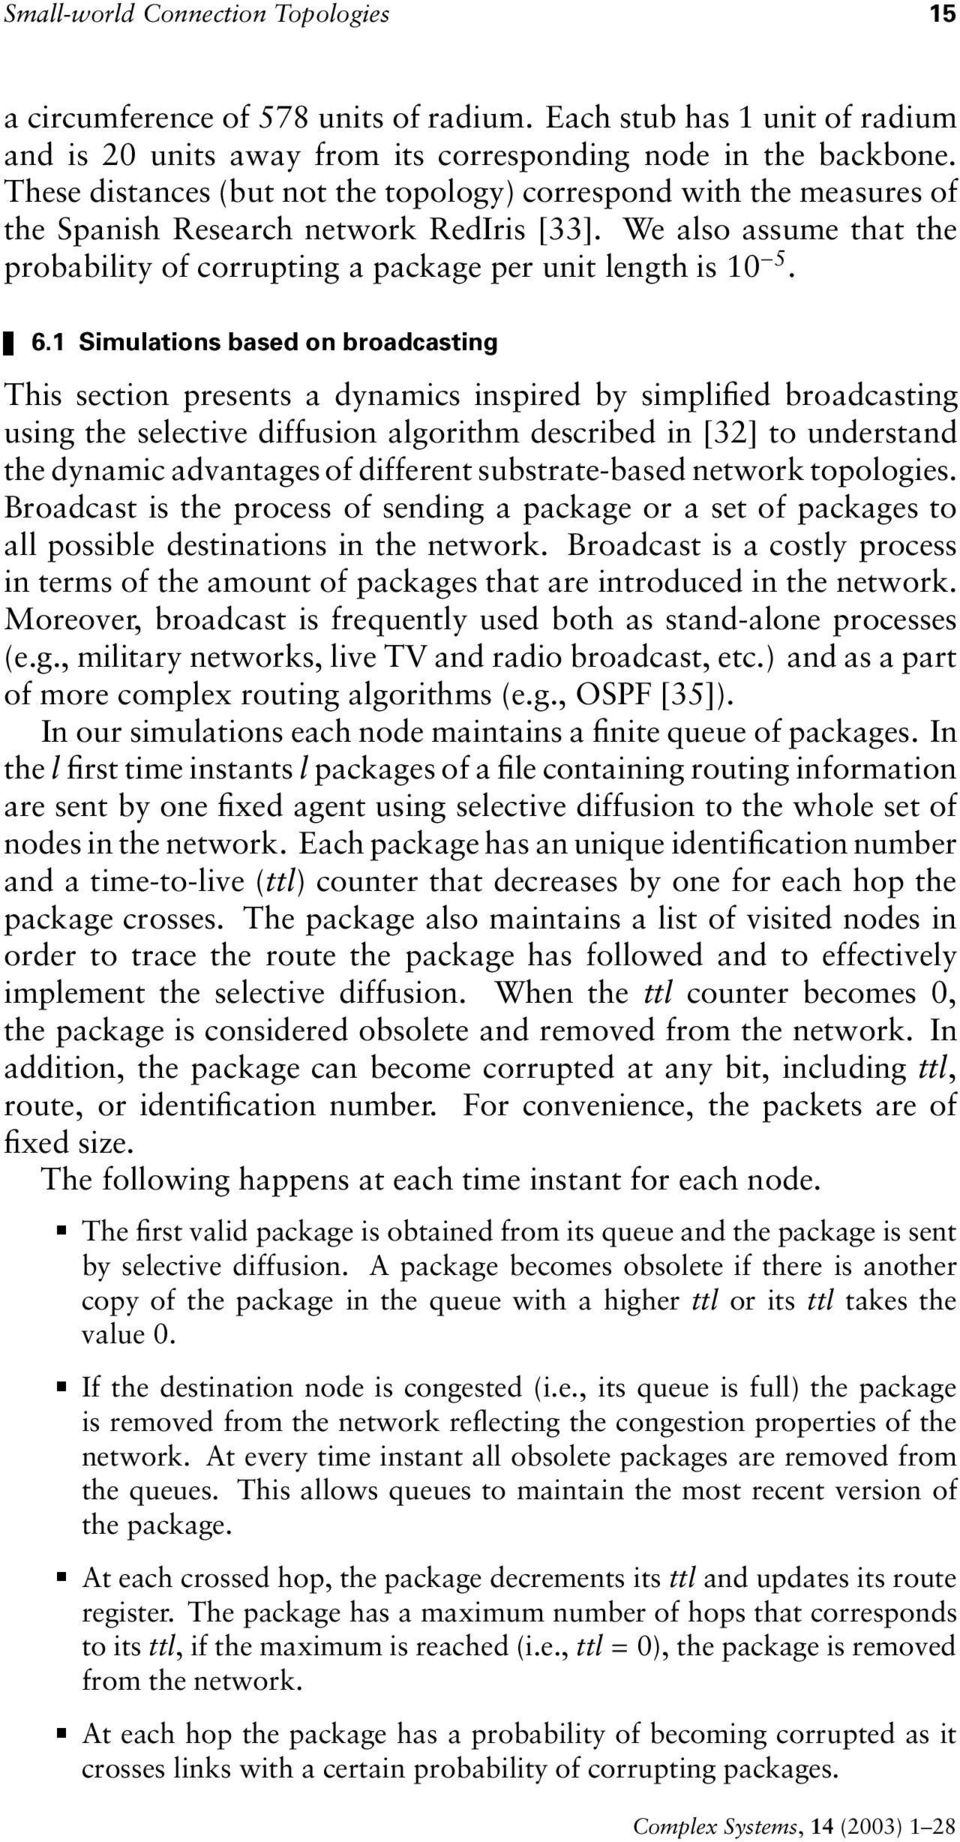 Simulations based on broadcasting This section resents a dynamics insired by simlified broadcasting using the selective diffusion algorithm described in [32] to understand the dynamic advantages of